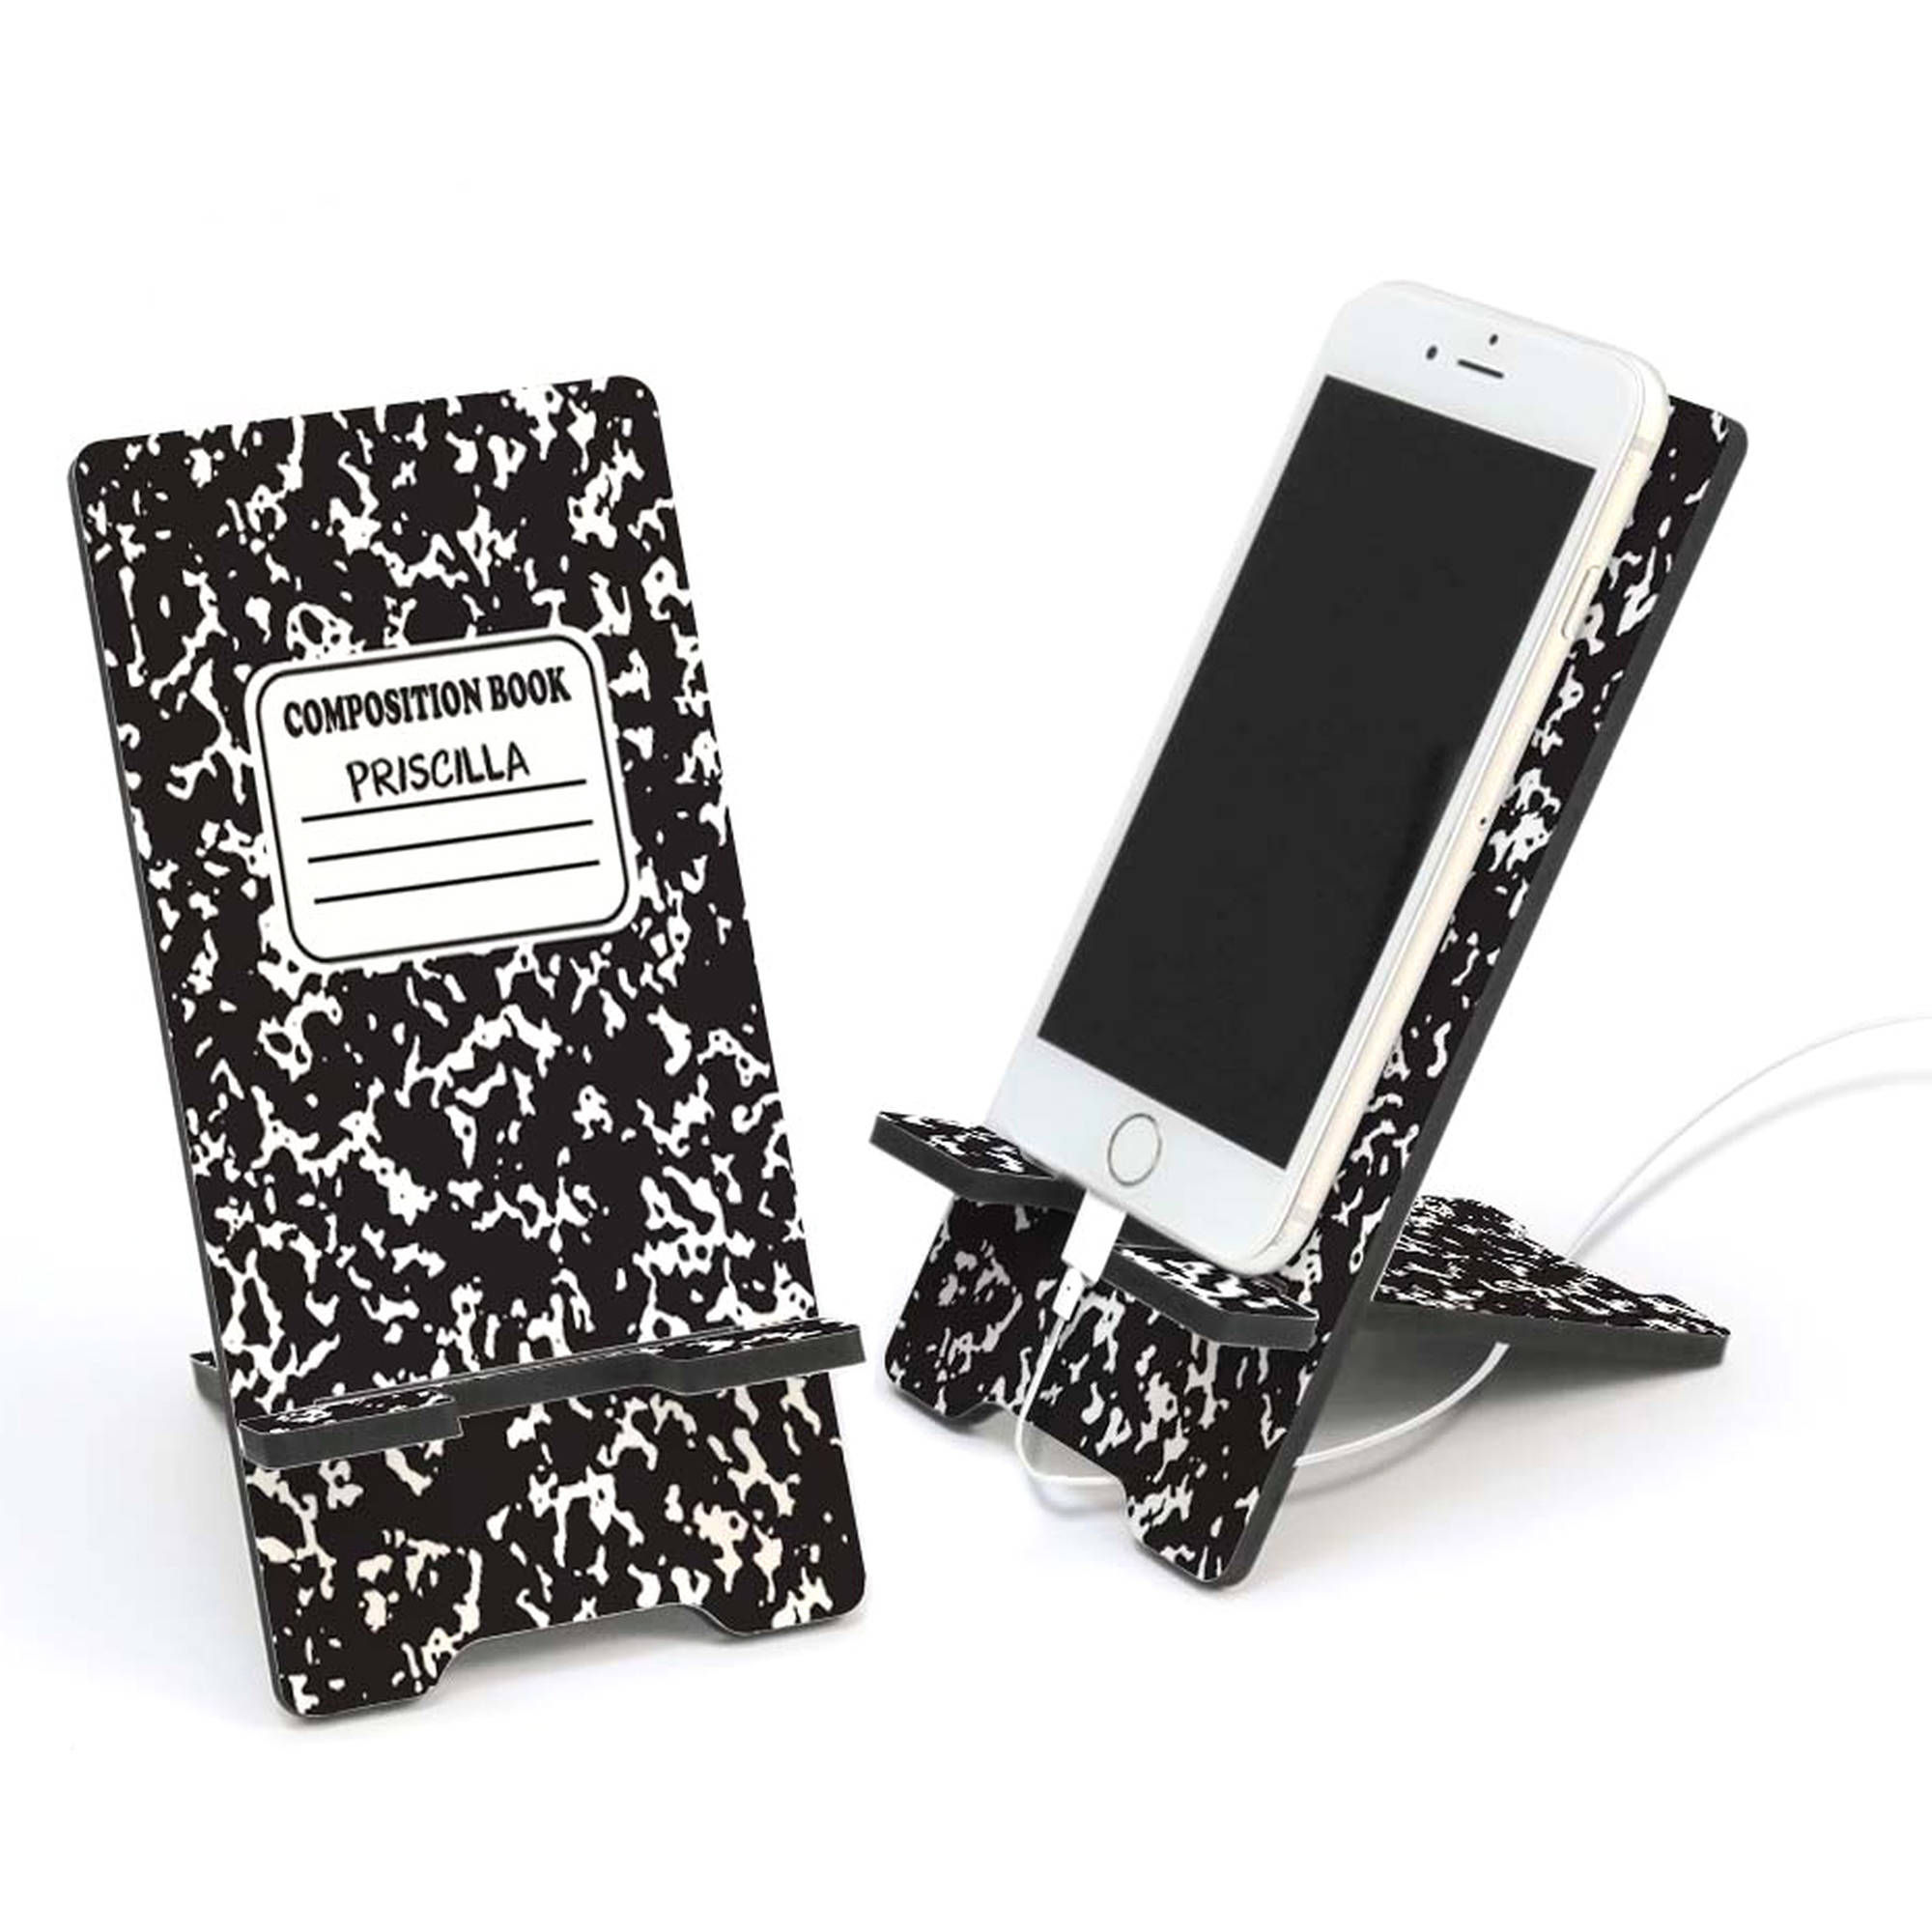 Composition Book Personalized Cell Phone Stand